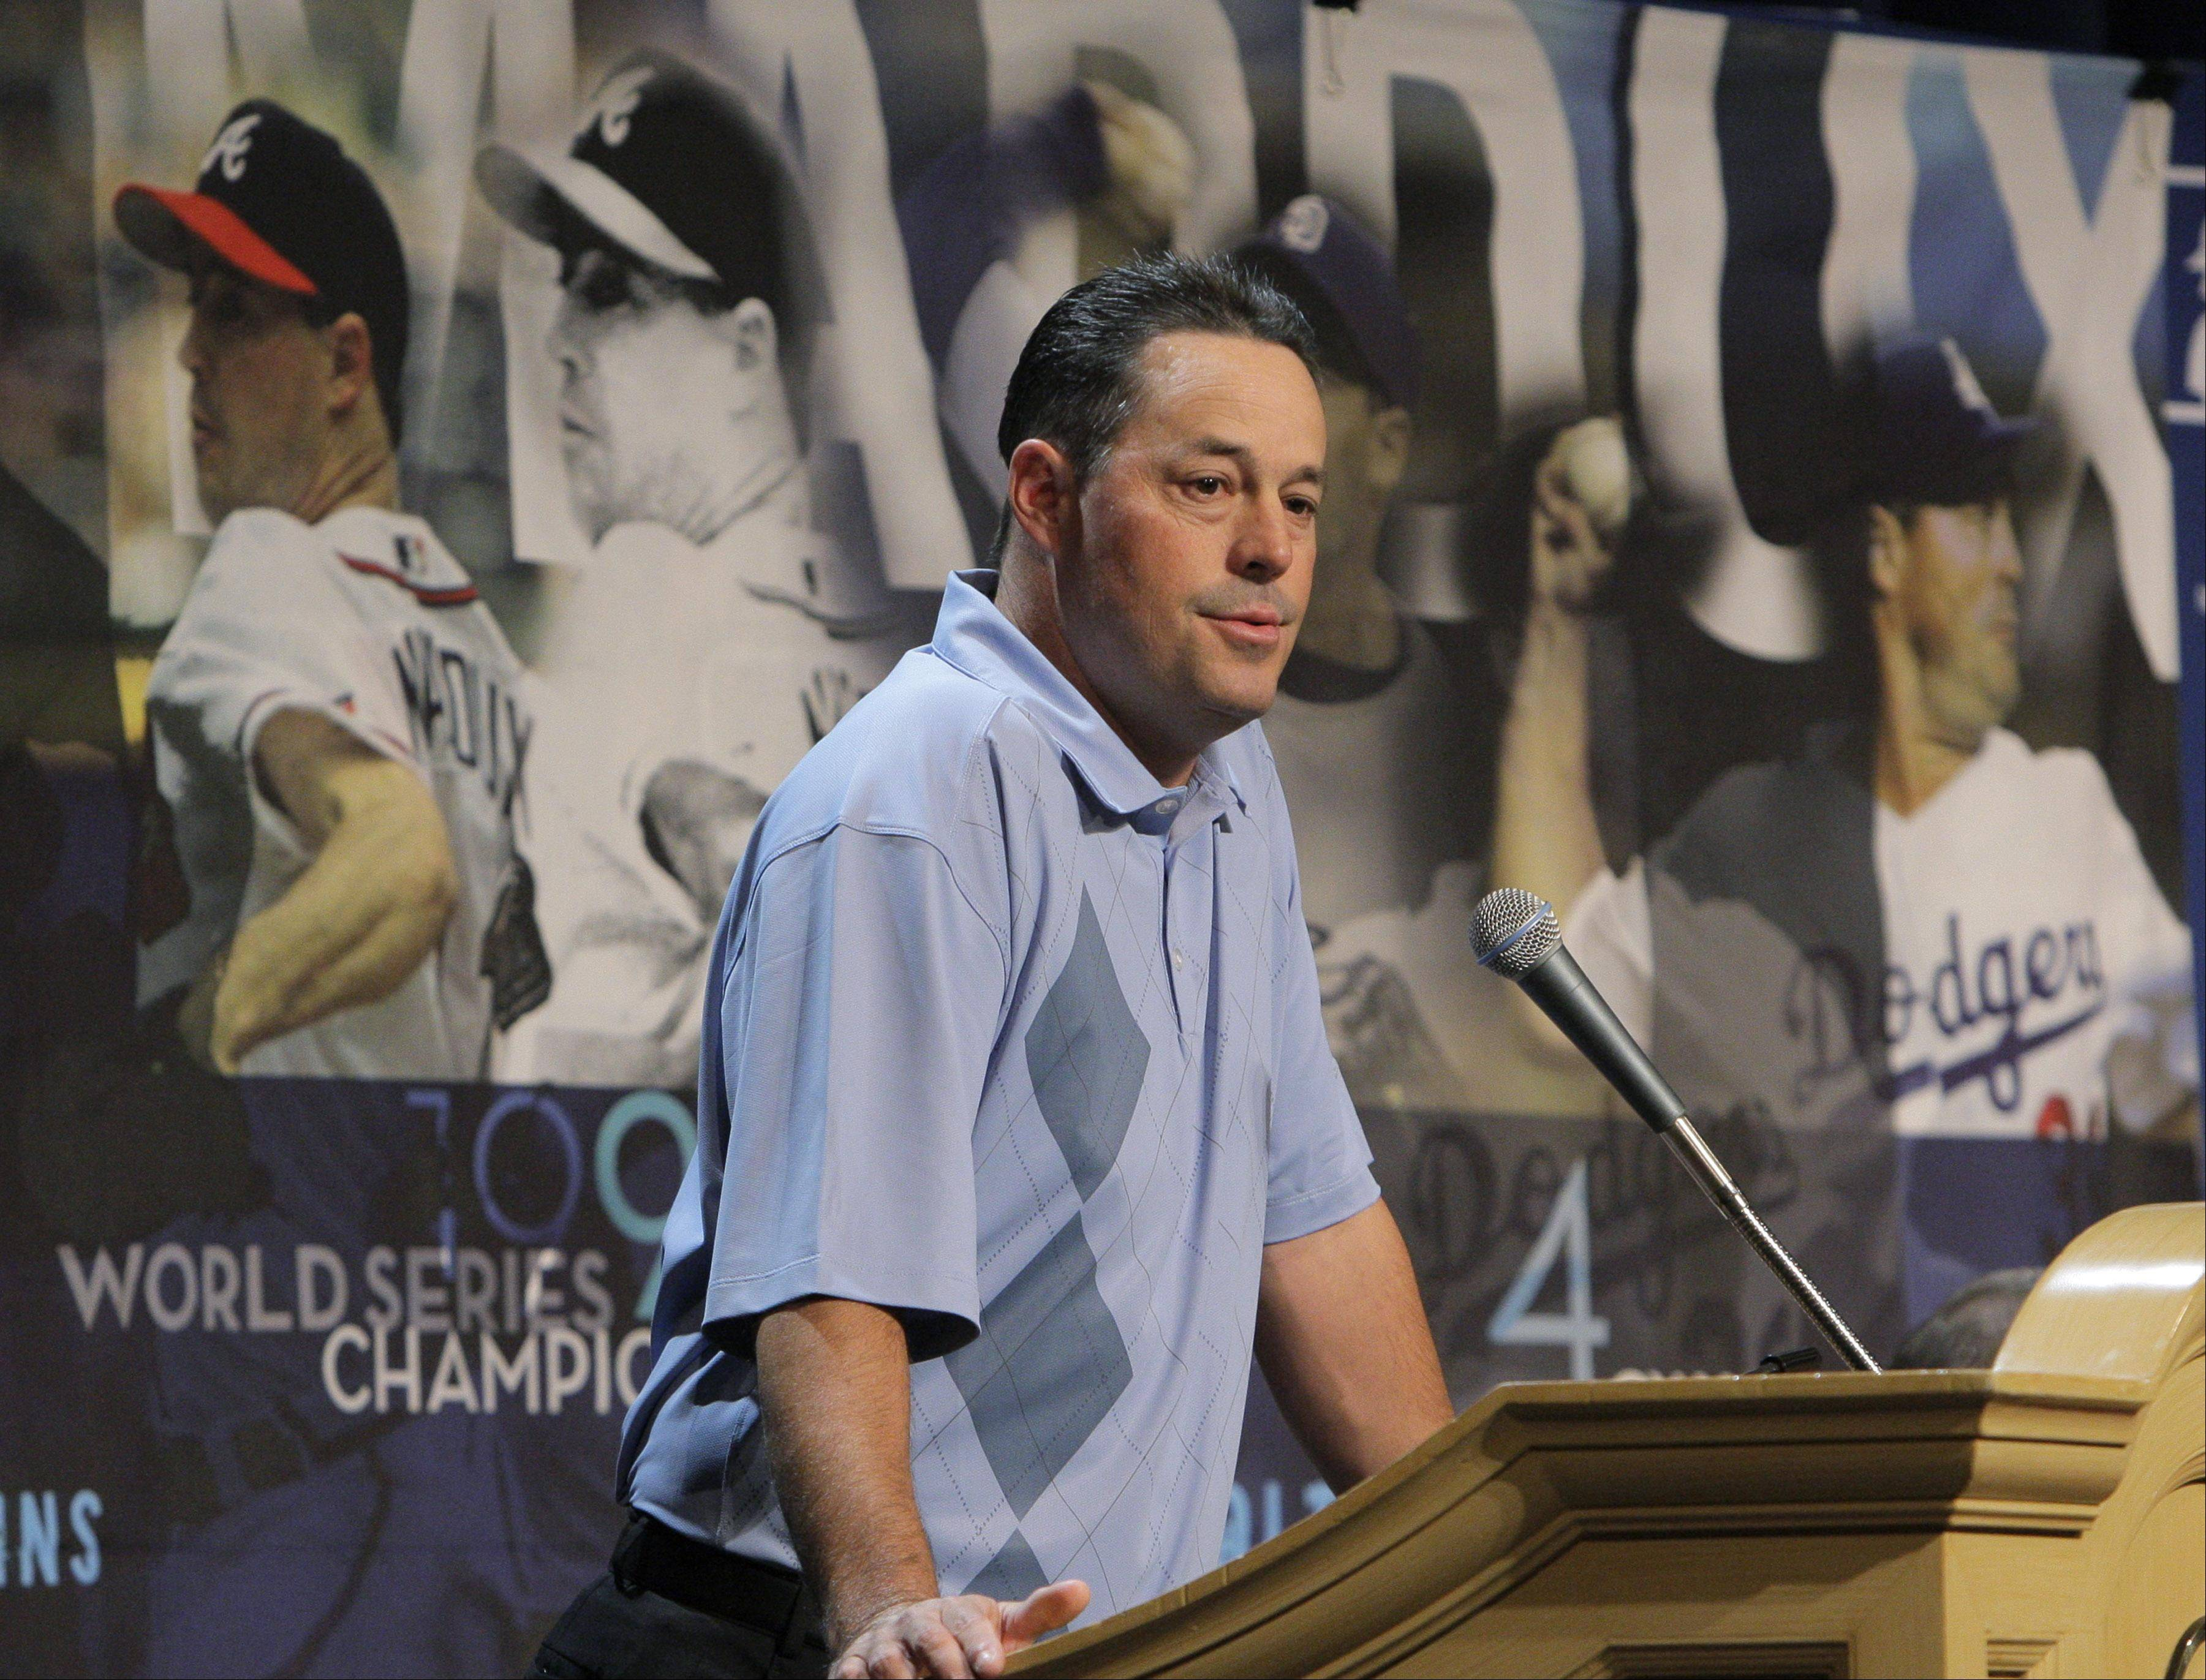 Greg Maddux doesn't figure to be back with the Cubs and says he is in no hurry to find another job in baseball.